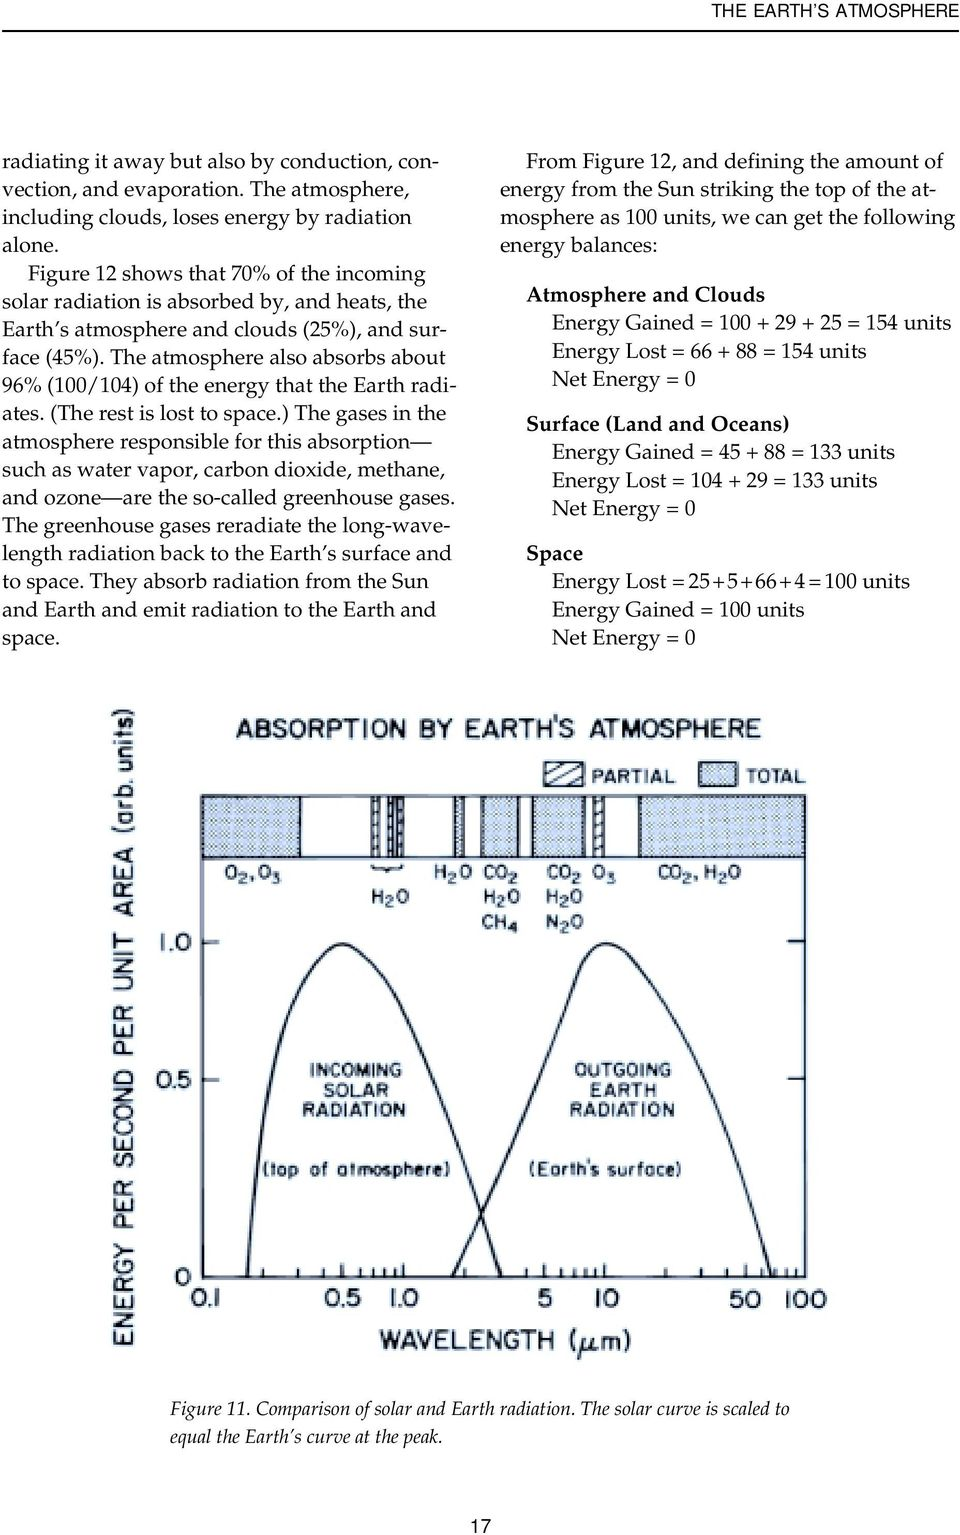 The atmosphere also absorbs about 96% (100/104) of the energy that the Earth radiates. (The rest is lost to space.